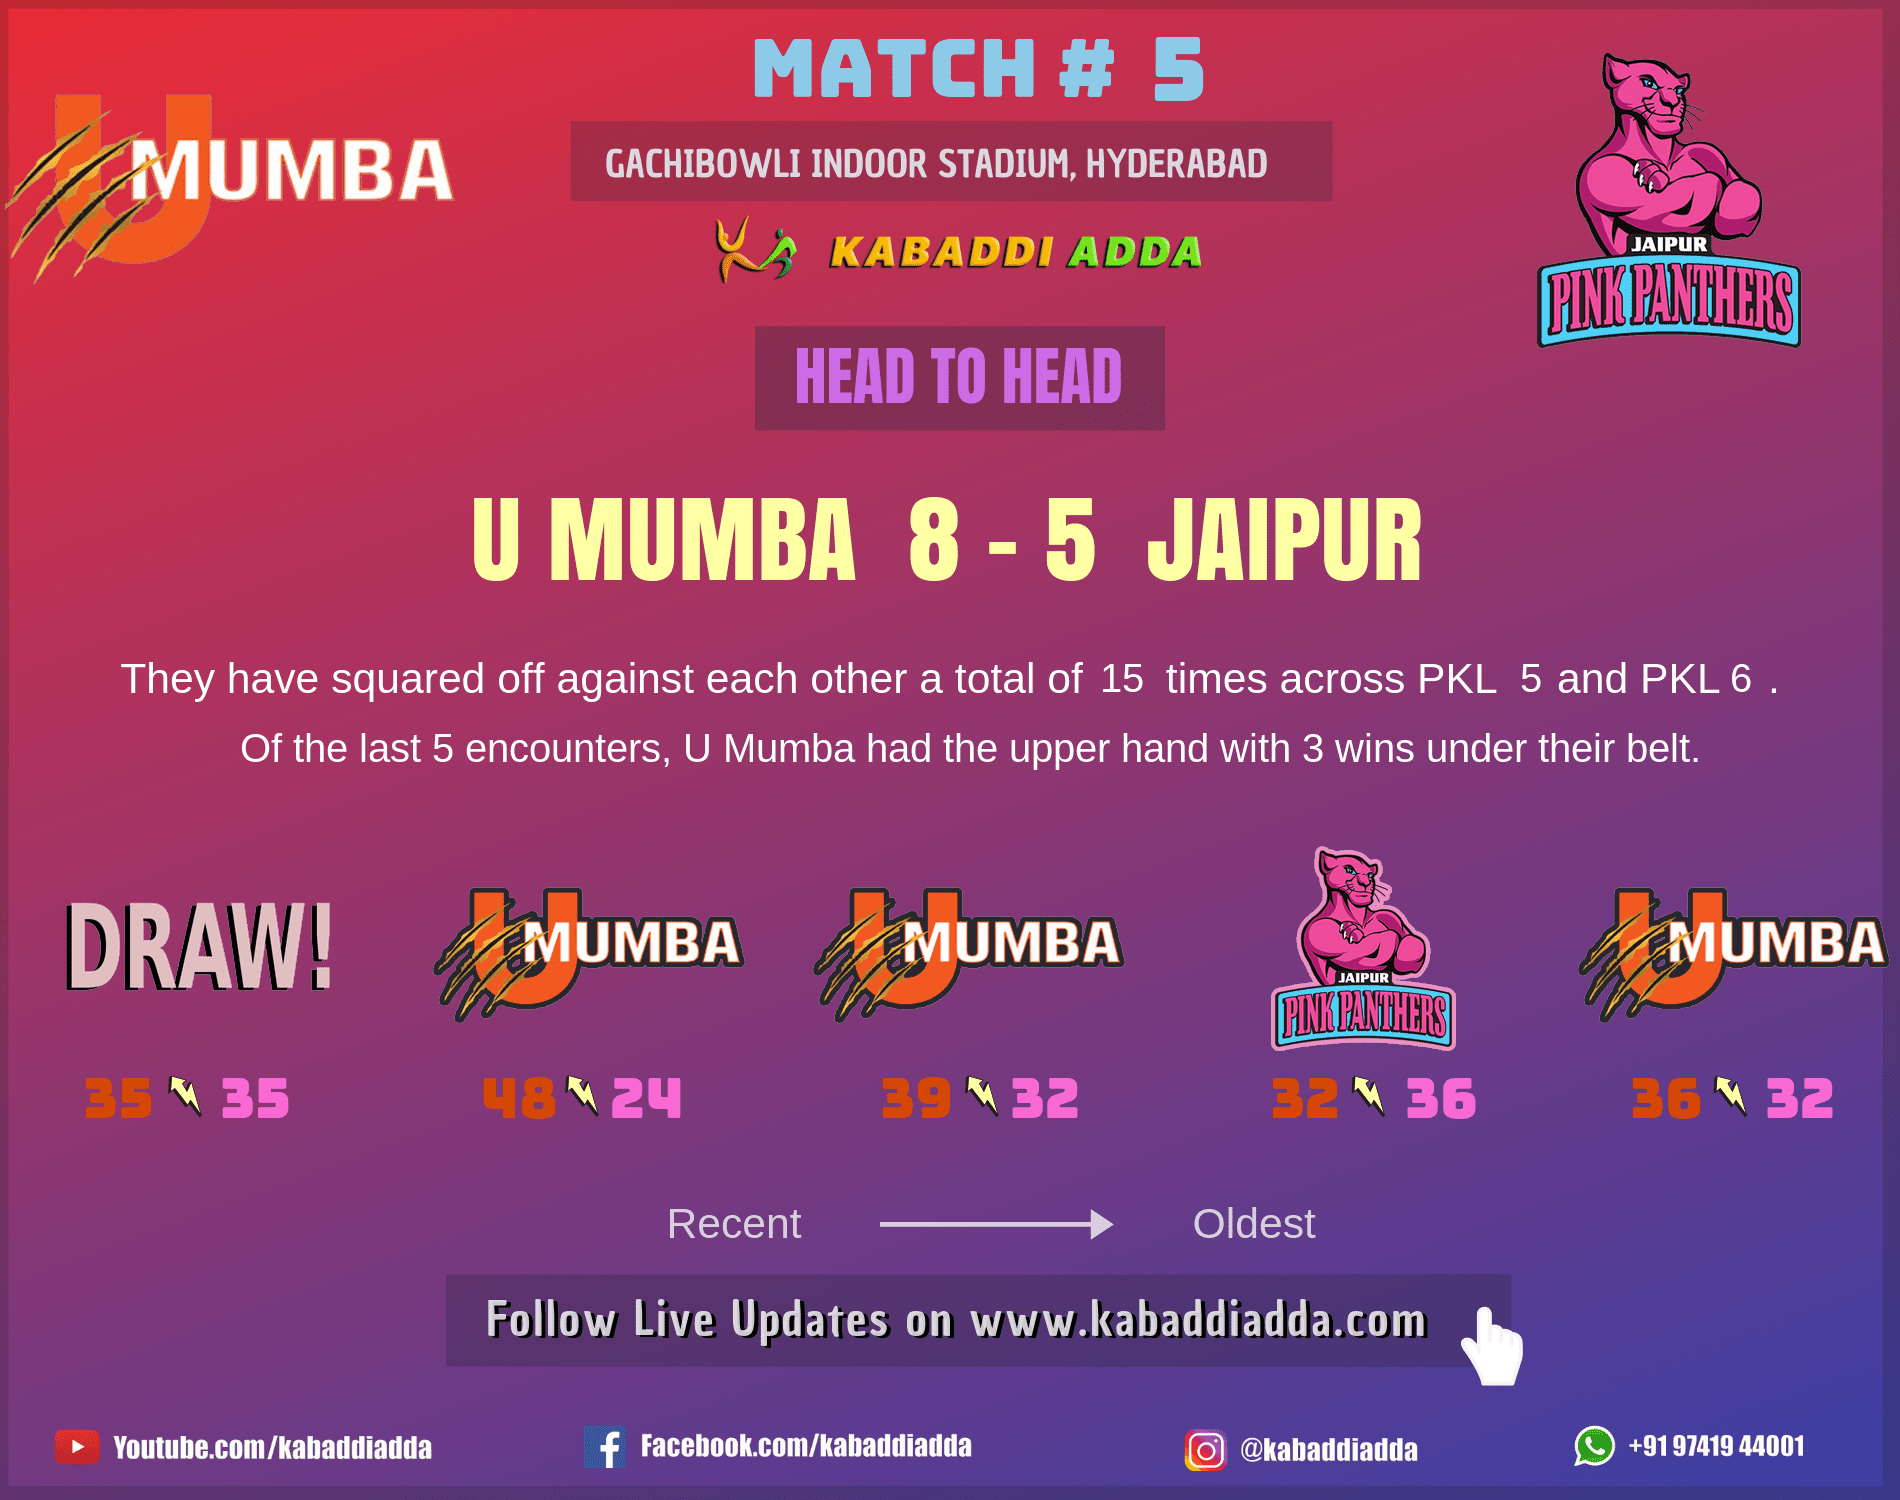 Jaipur Pink Panthers UMumba head to head